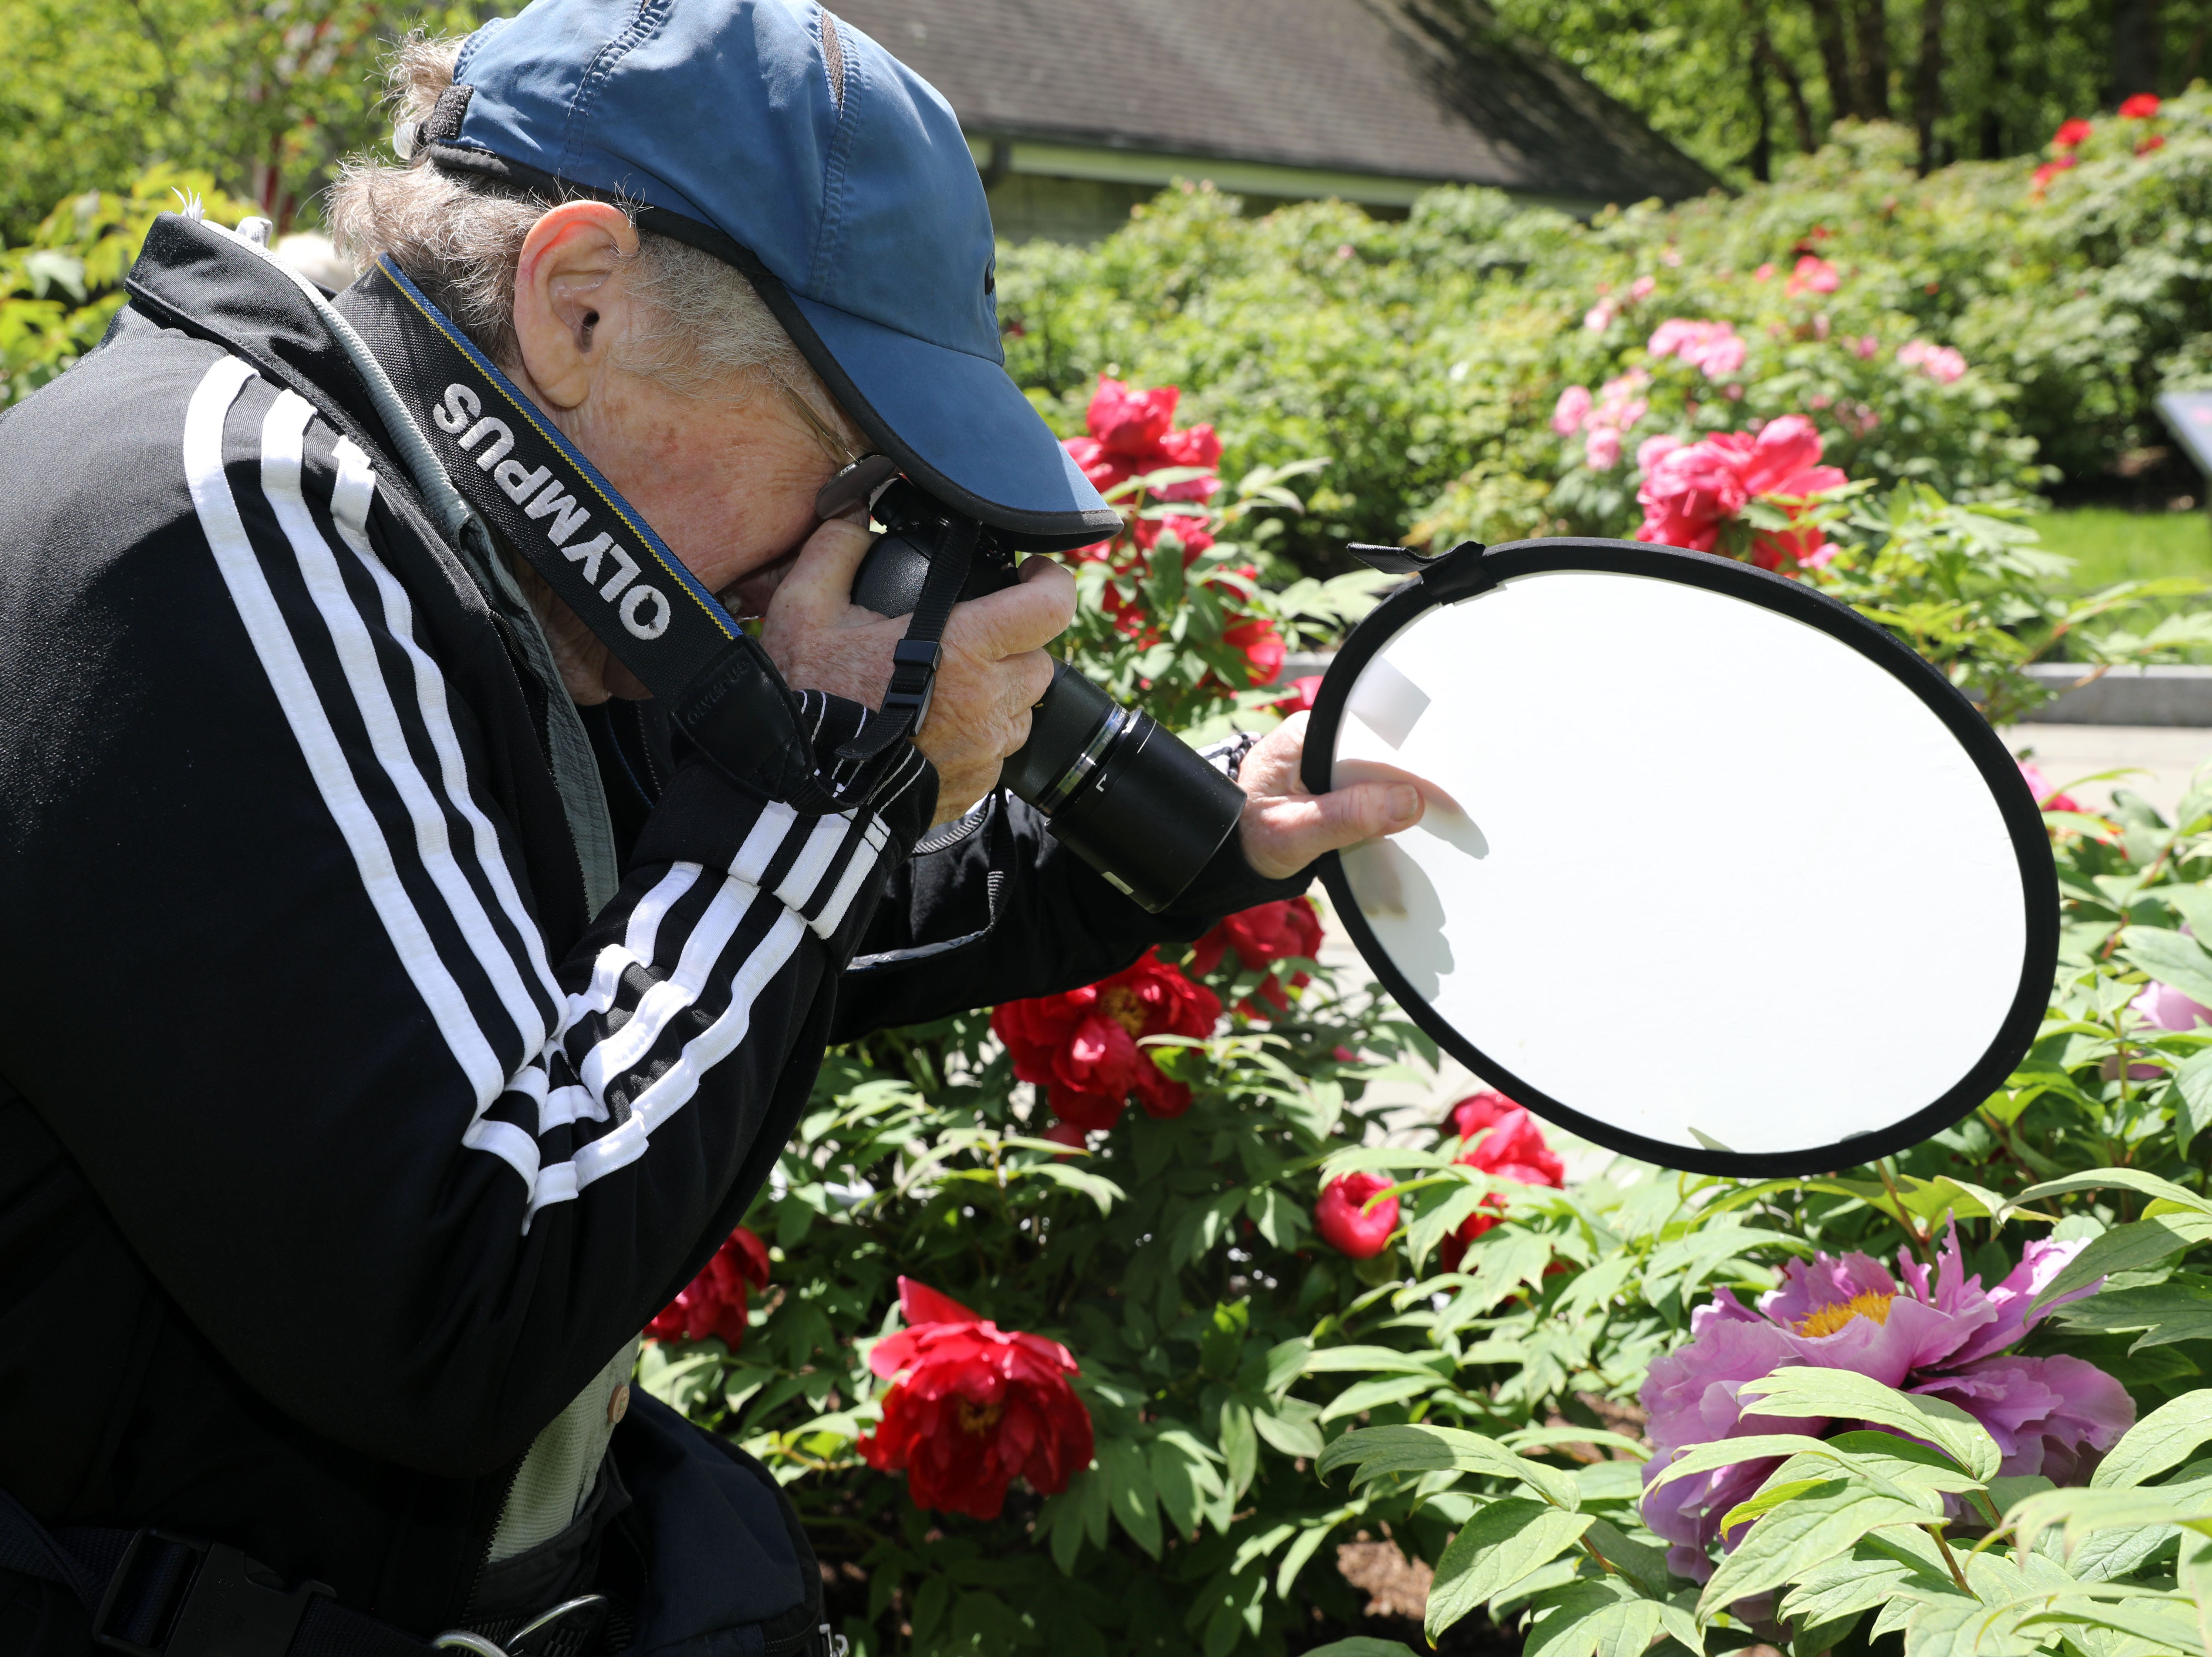 Linda Austrian, 77, of Harrison uses a diffuser to photograph a peony in full bloom at Rockefeller State Park Preserve in Pleasantville May 15, 2019. Austrian and a few others from the Westchester Photographic Society our celebrating a friend's birthday by photographing the peonies followed by lunch.